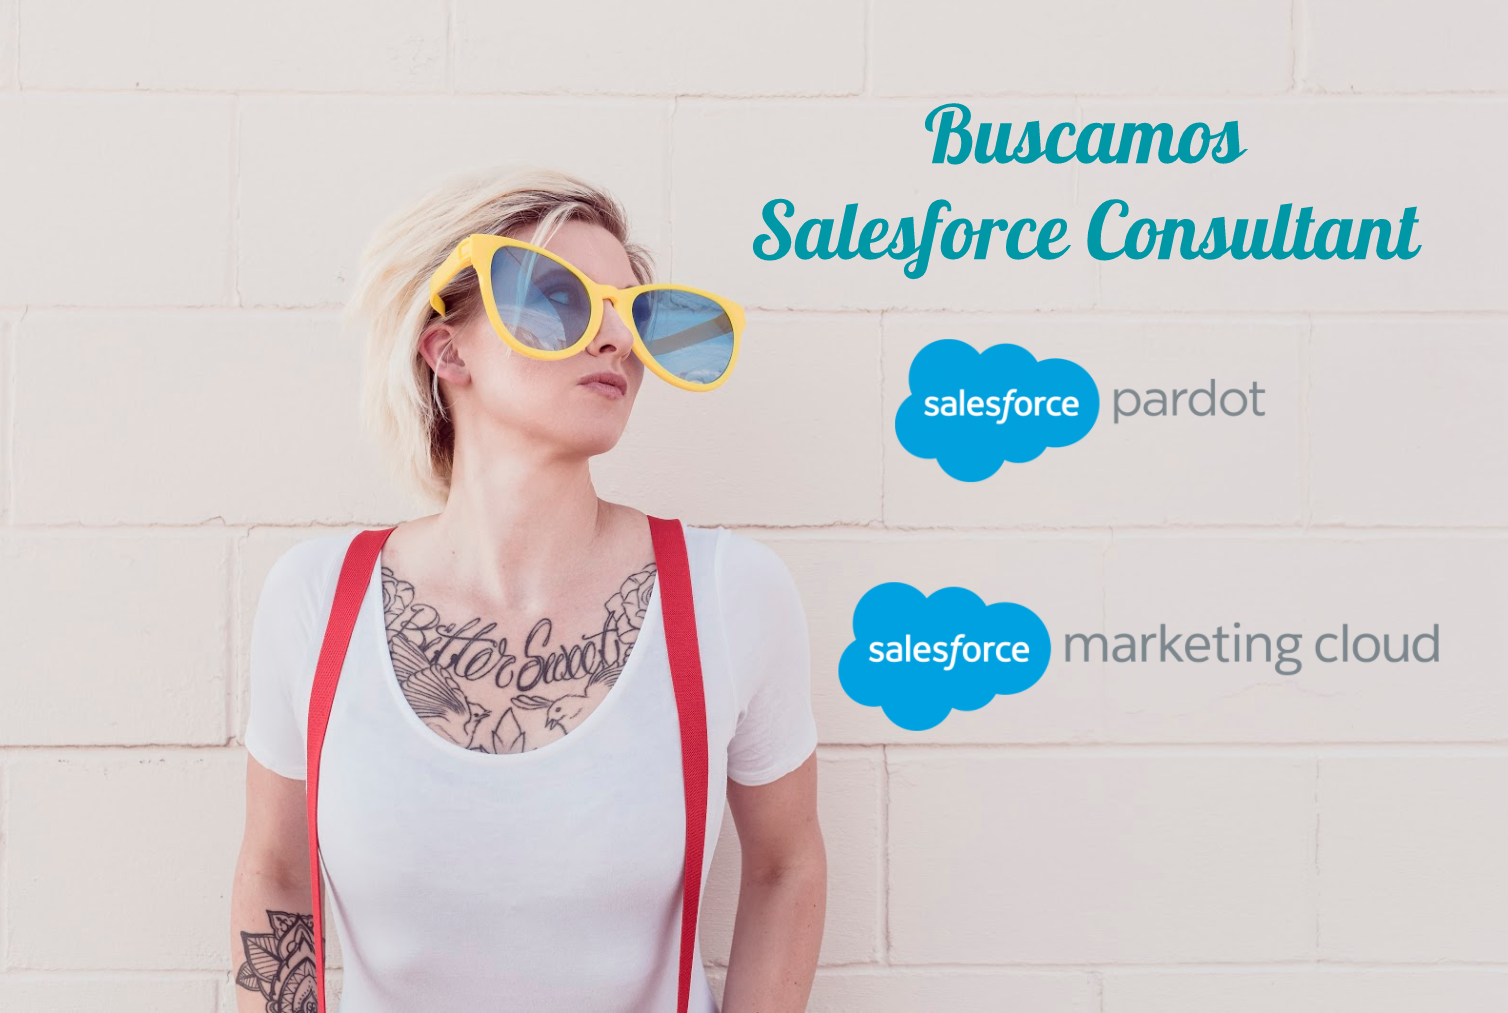 Salesforce consultant smartup mexico-1.png